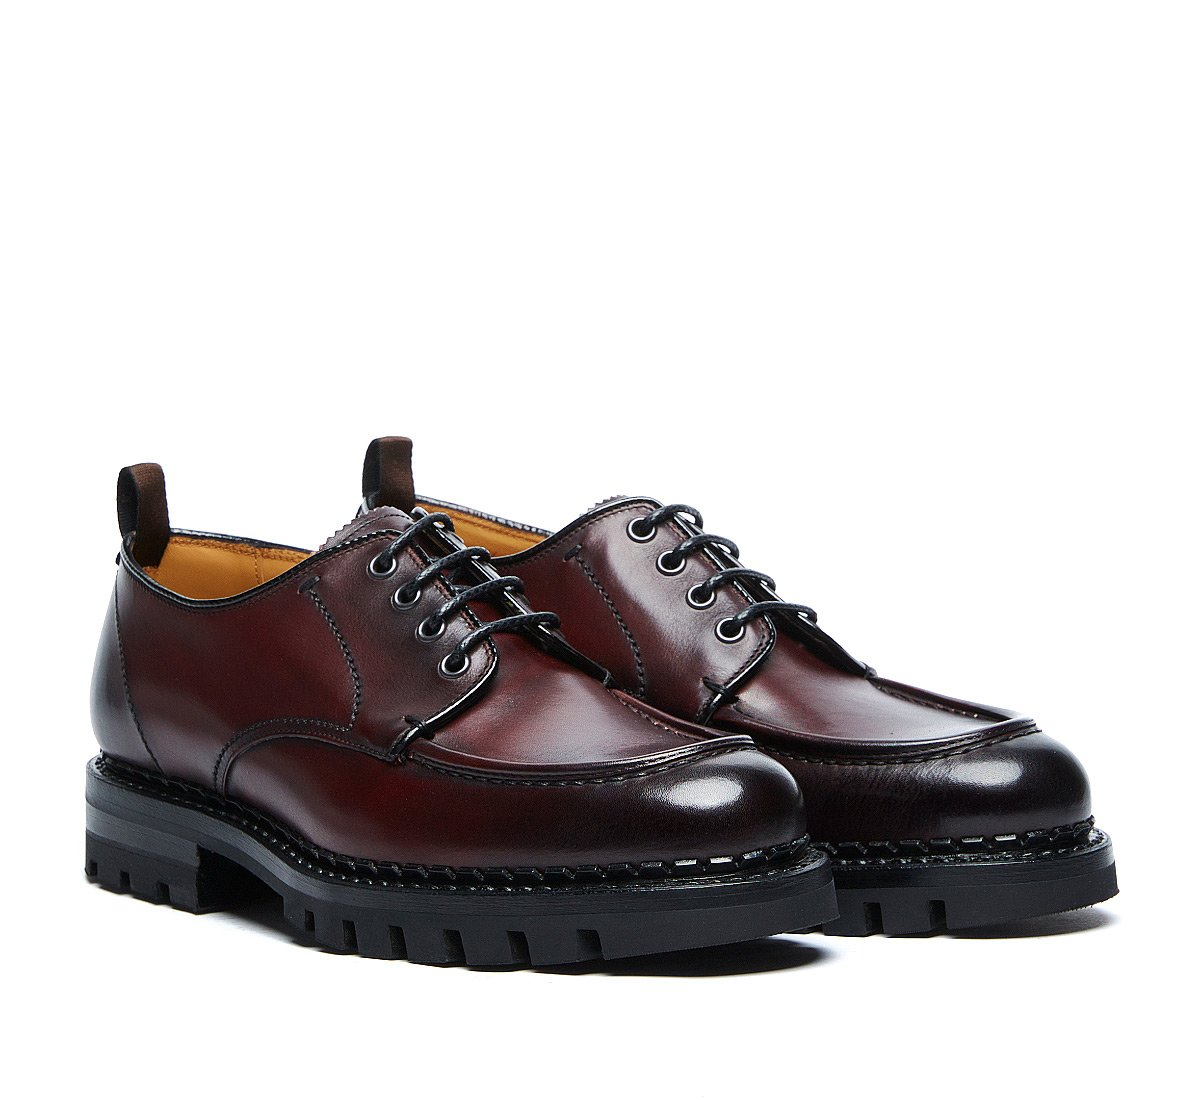 Lace up in calf leather padded by hand - Flex Goodyear construction